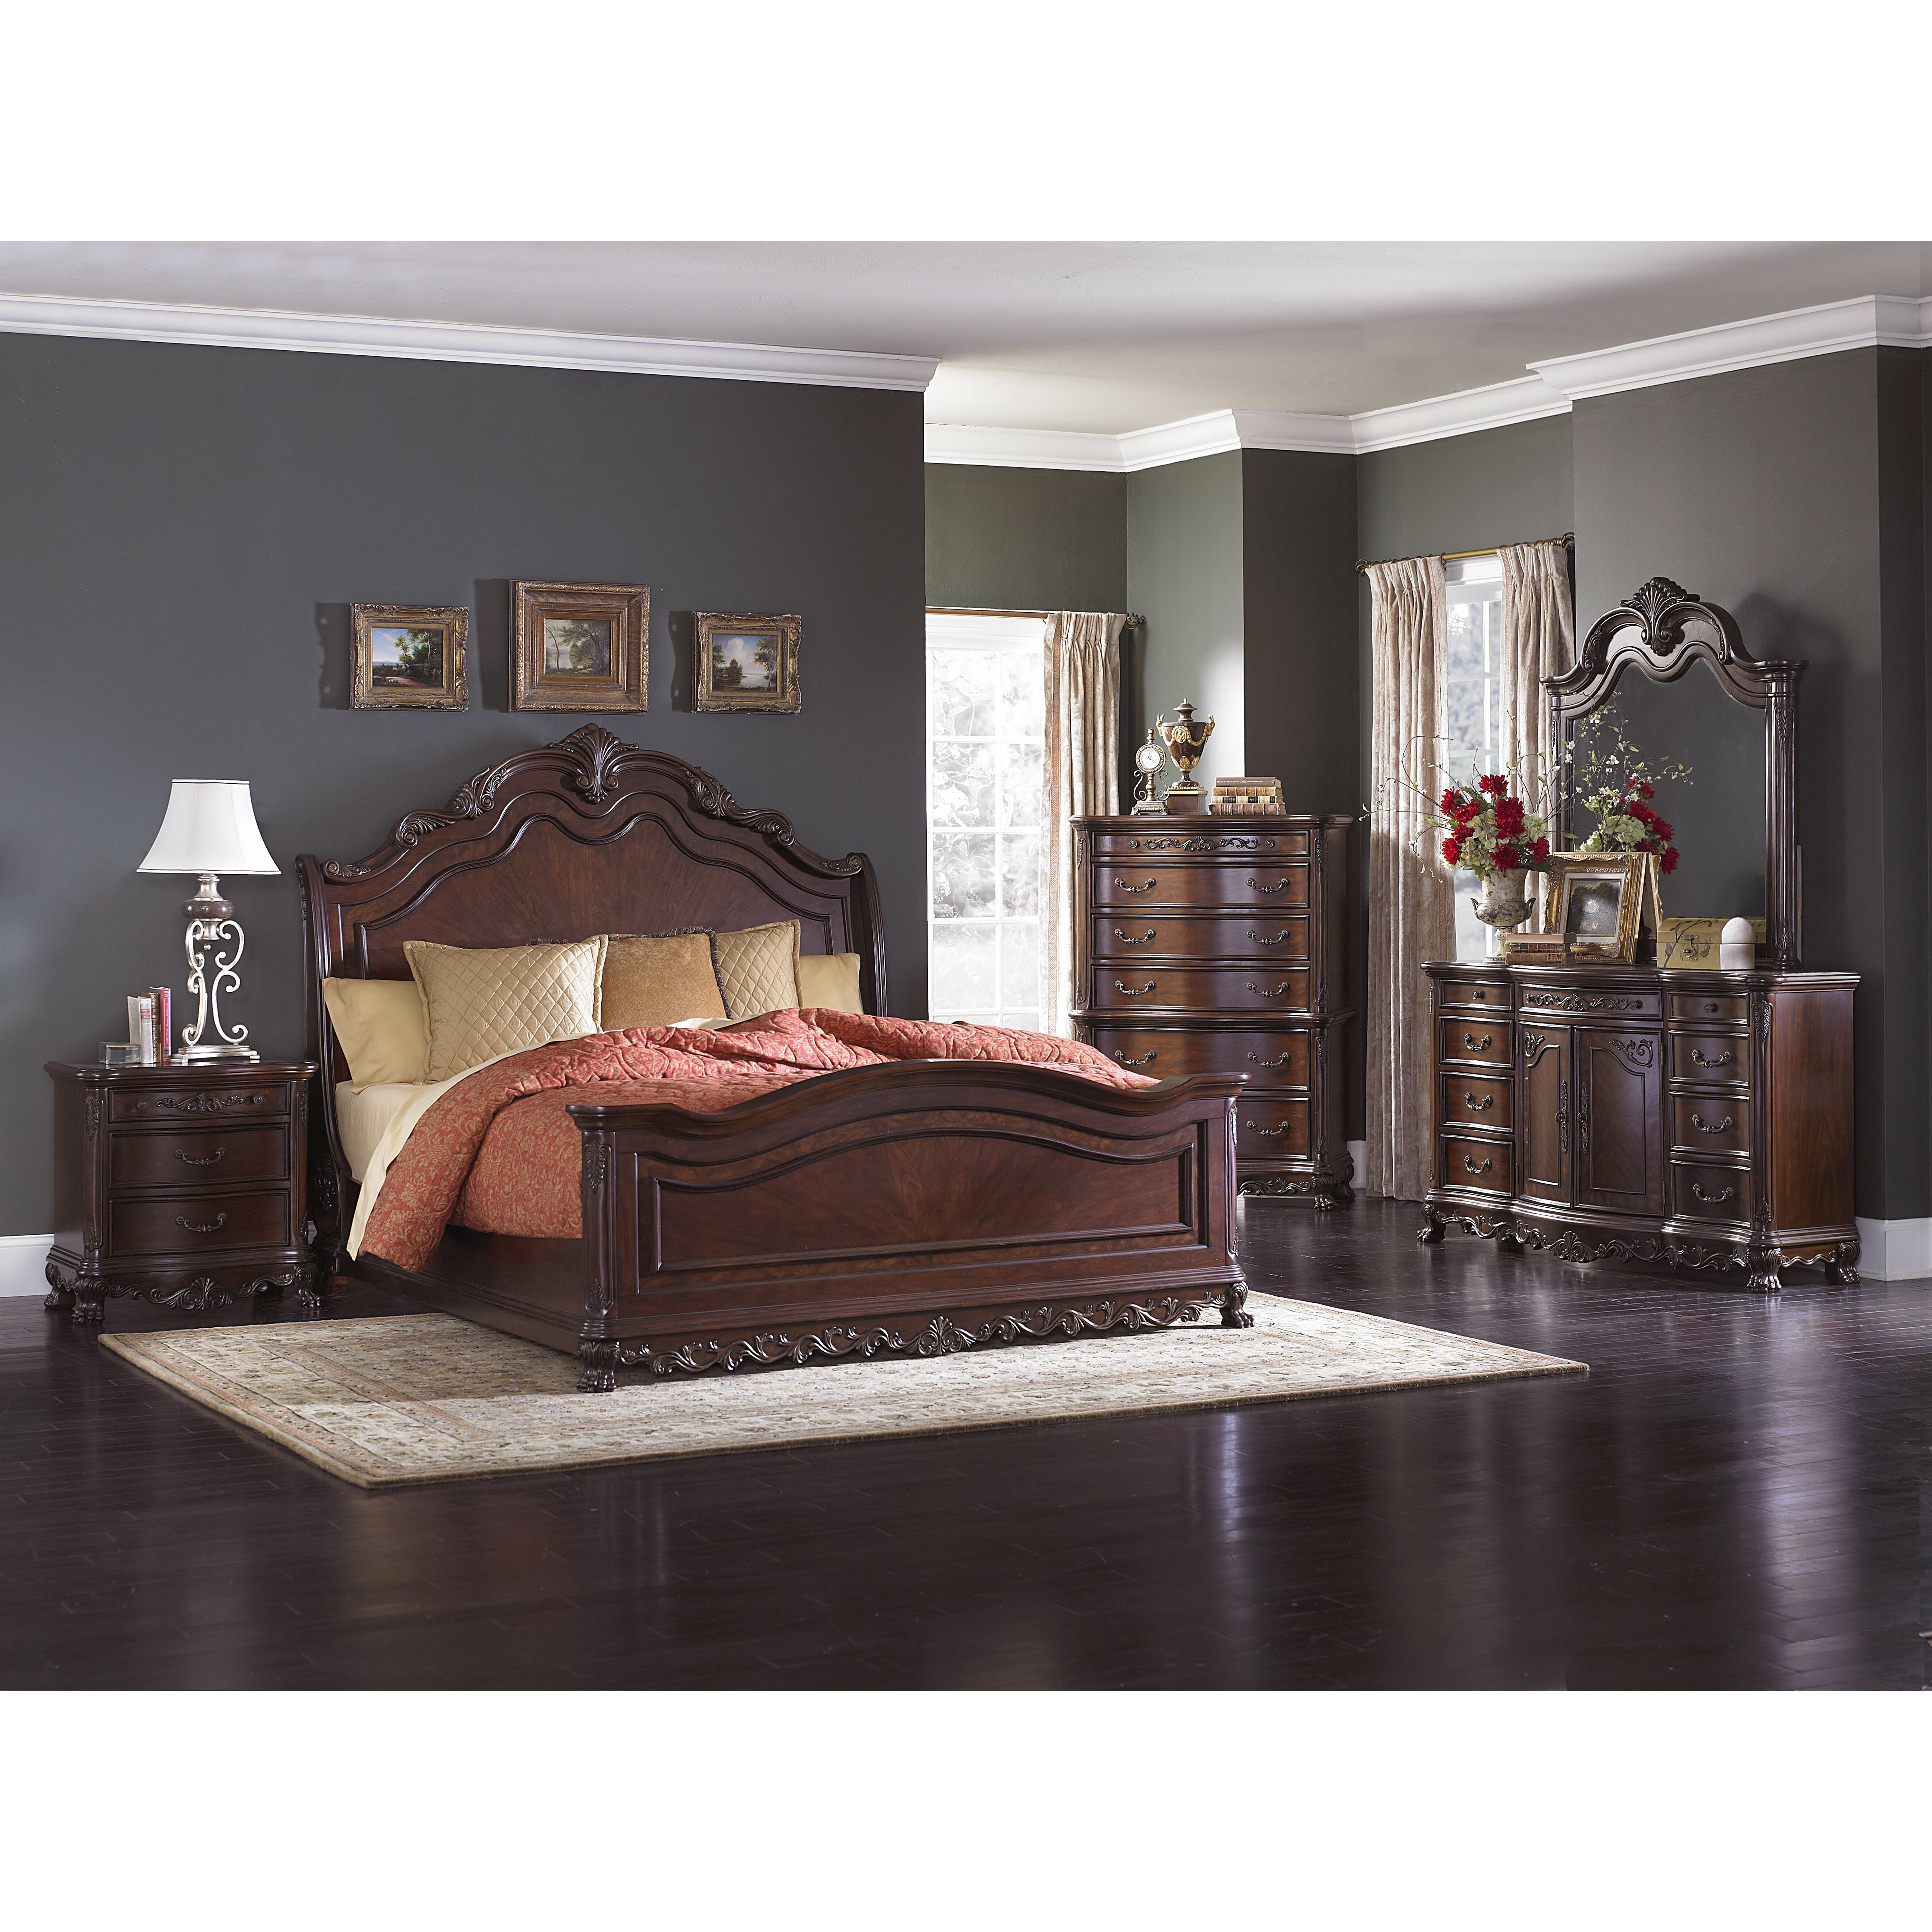 Solid Mahogany Bedroom Furniture Sleigh Bedroom Sets Youll Love Wayfair